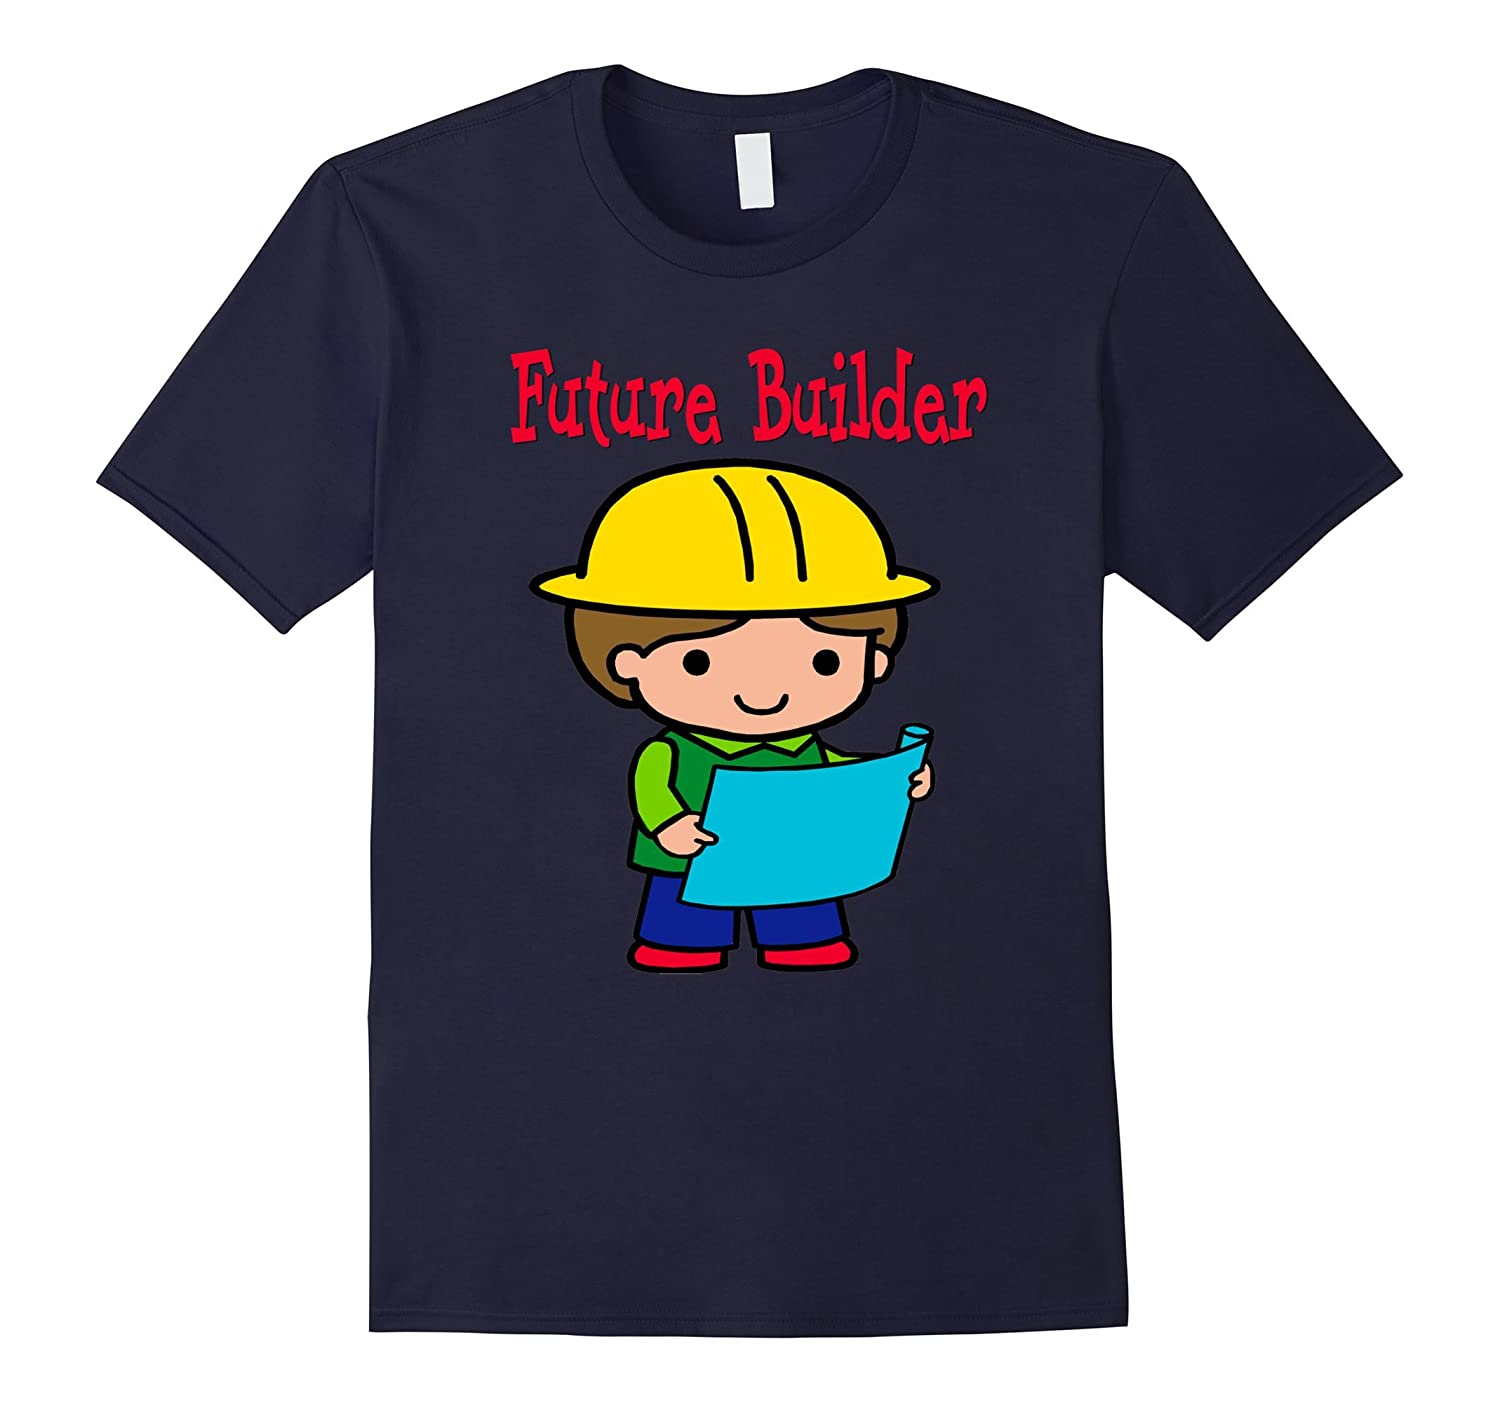 Adorable Future Builder Child's Play Dress Up T-shirt-TH